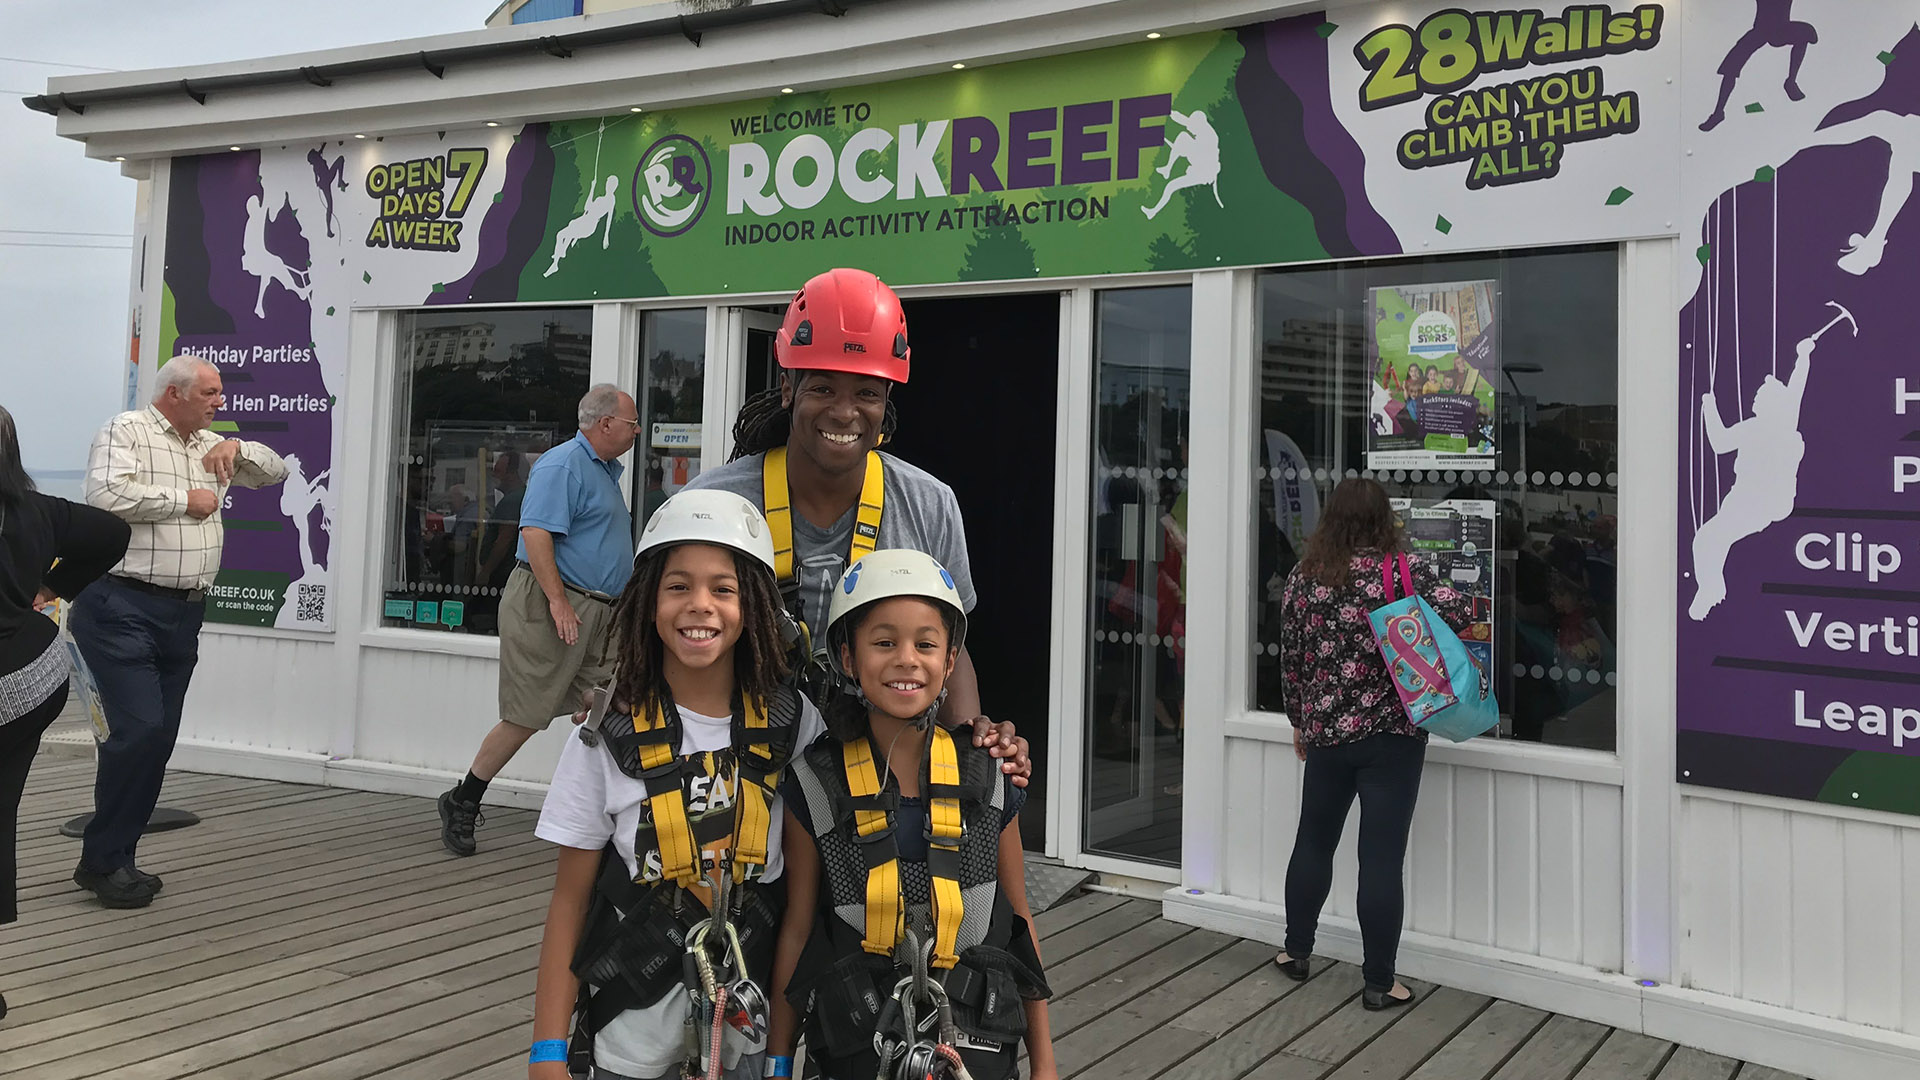 RockReef - Things to do in Bournemouth